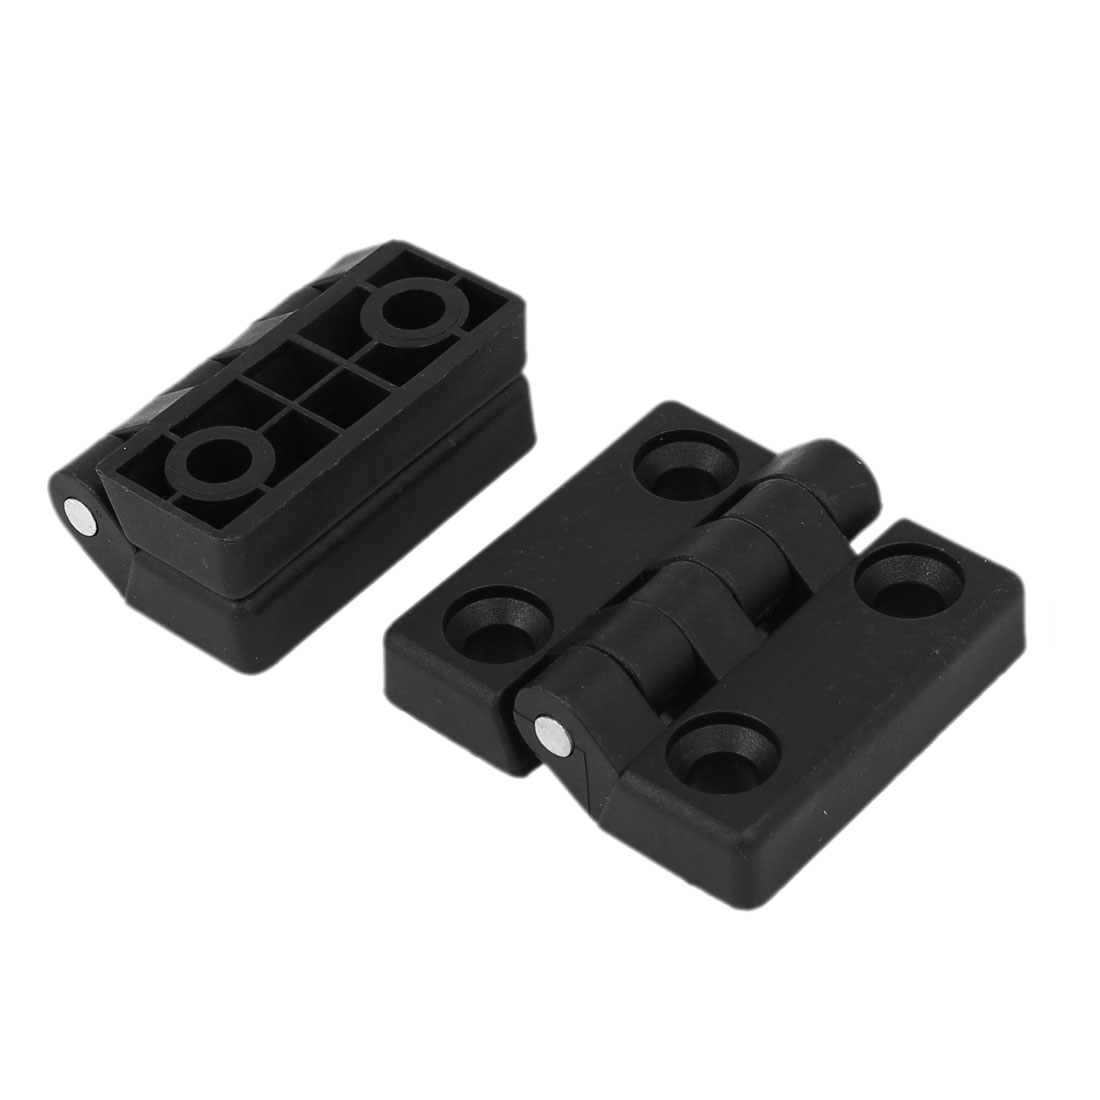 Toilet Bathroom Plastic Door Bearing Hinge Black 50mm x 48mm x 15mm 2pcs